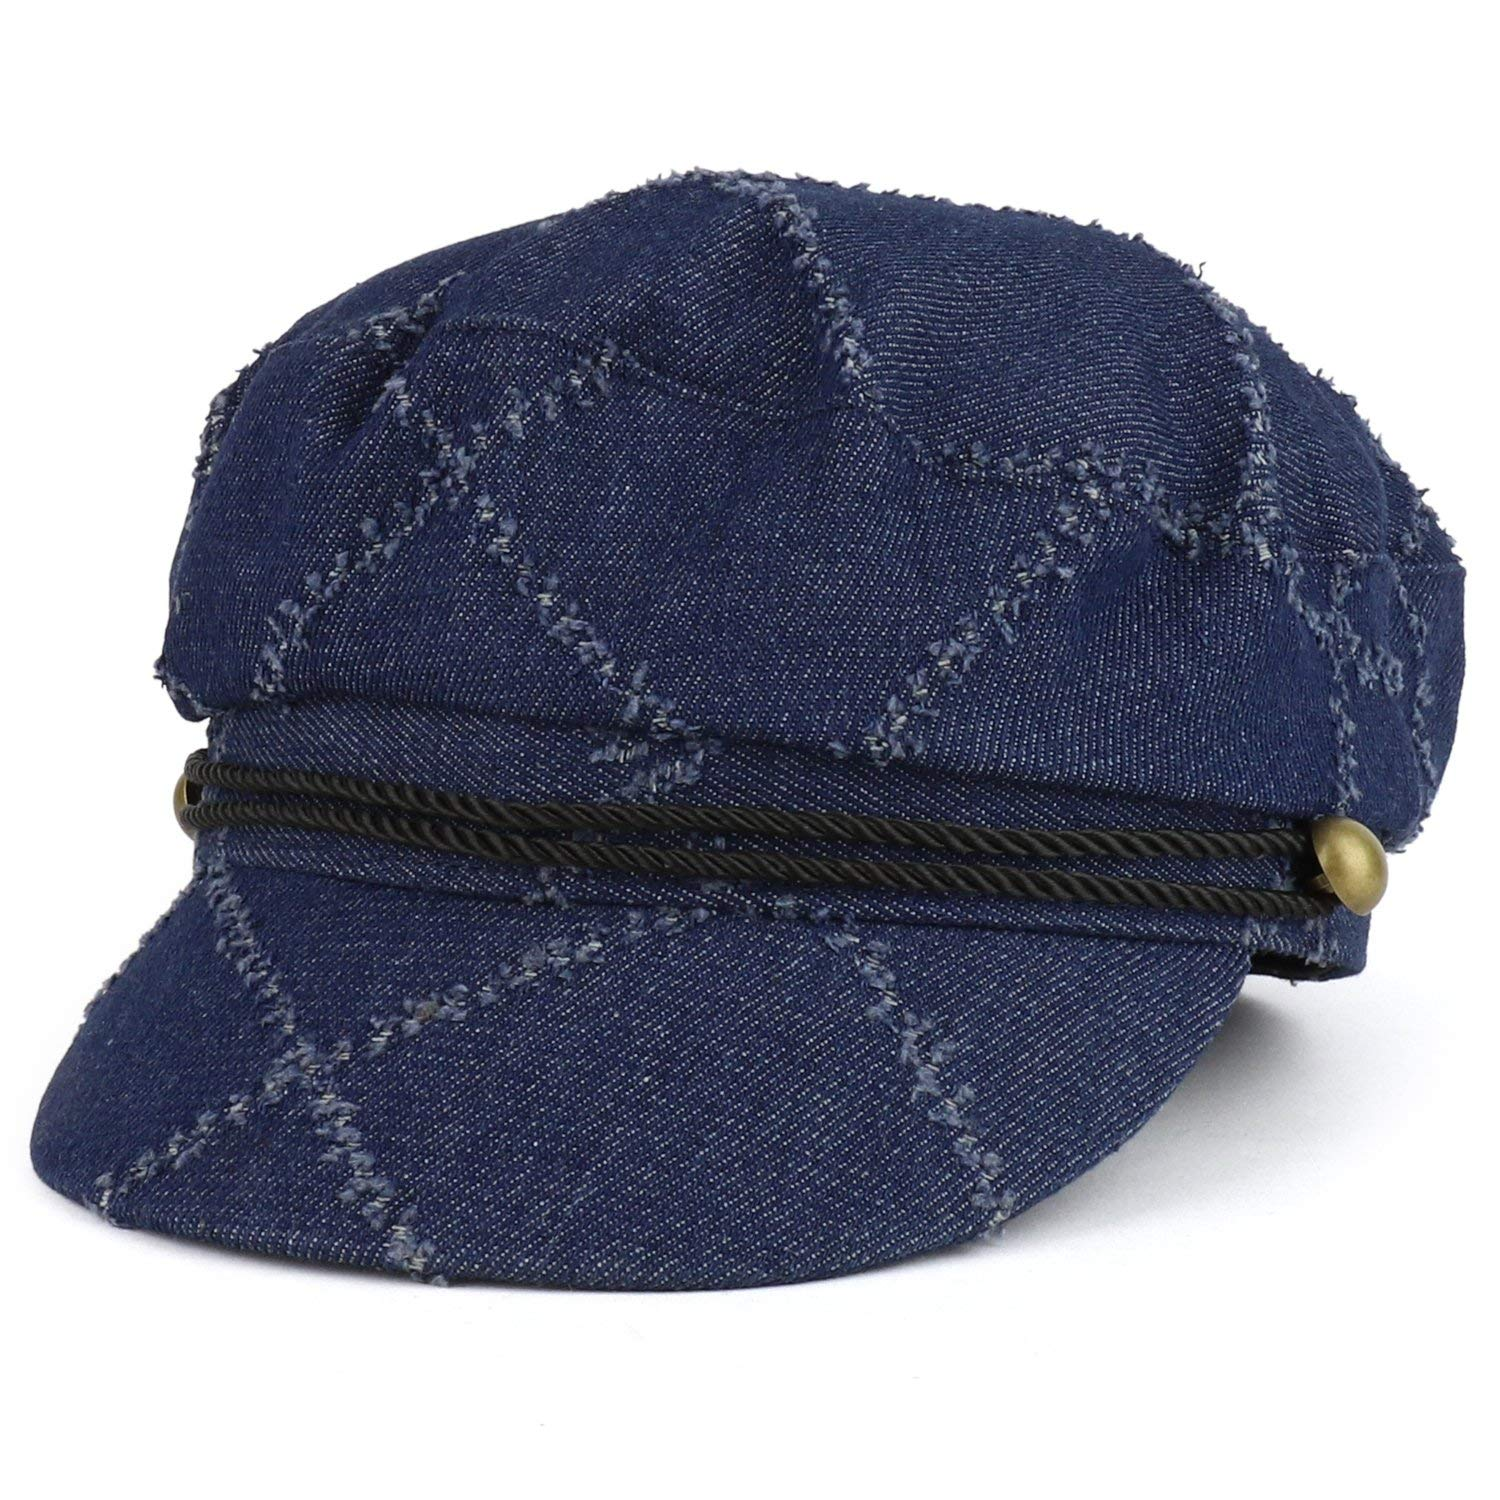 f9ca1ca41 Buy Trendy Apparel Shop Denim Greek Style Newsboy Fisherman Hat with ...